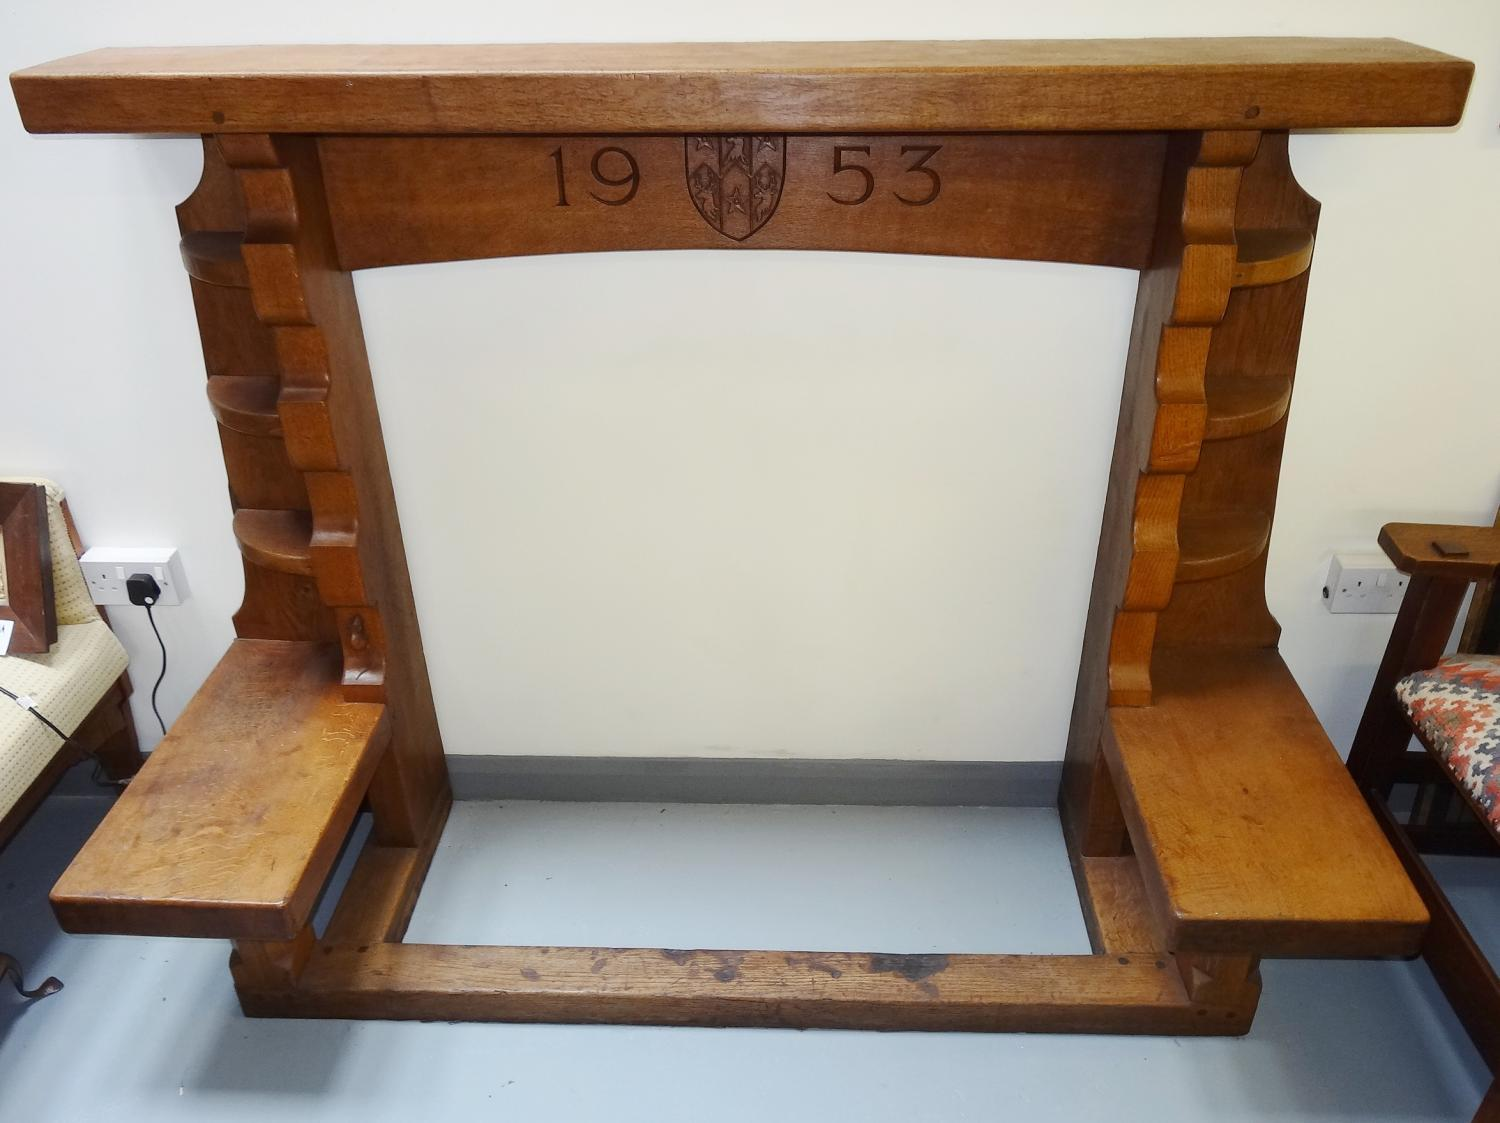 Rare Mouseman 1953 fireplace surround